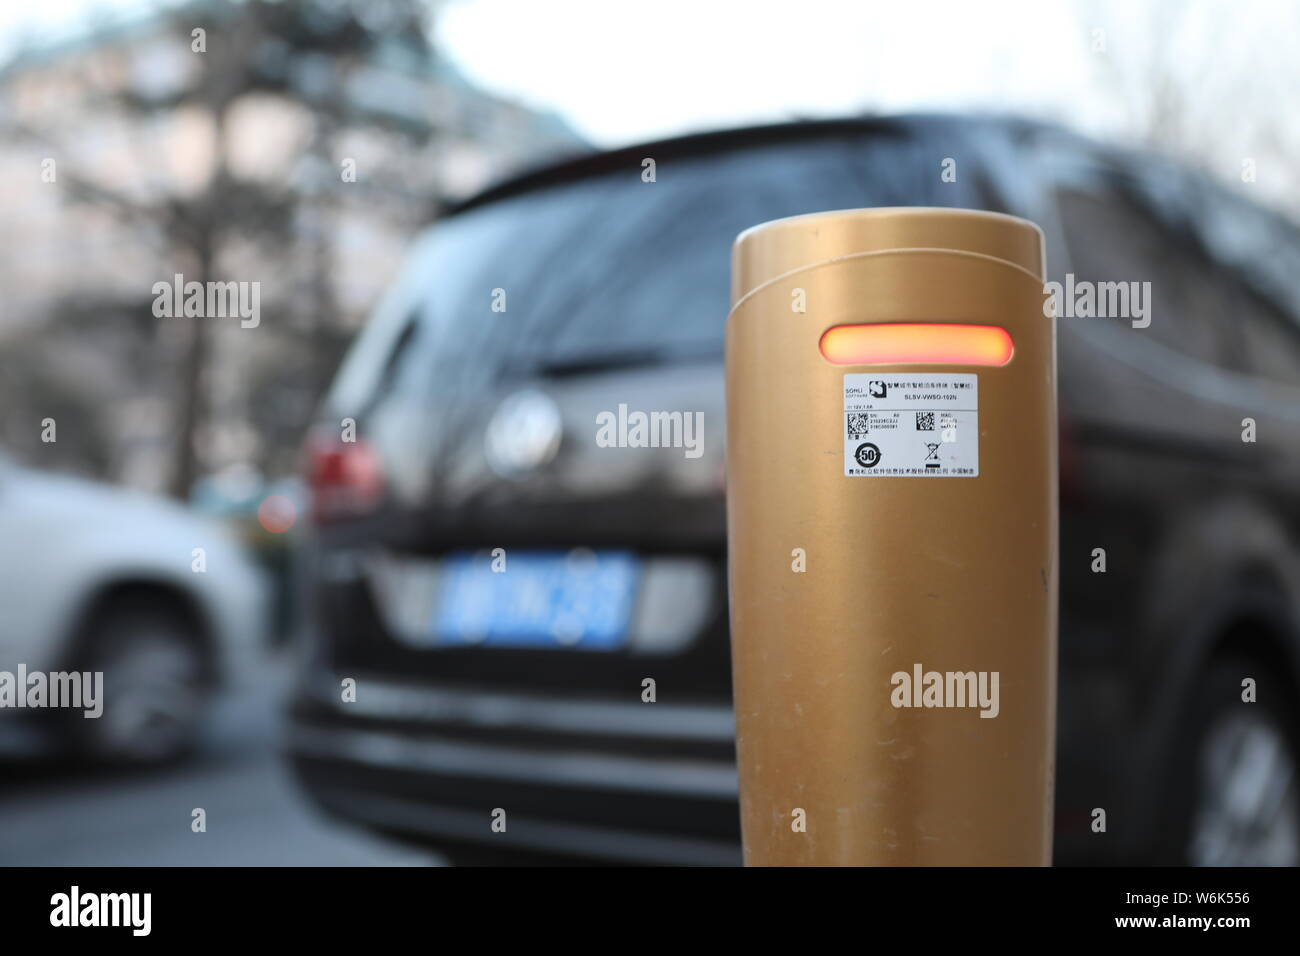 Electronic Toll Collection System Stock Photos & Electronic